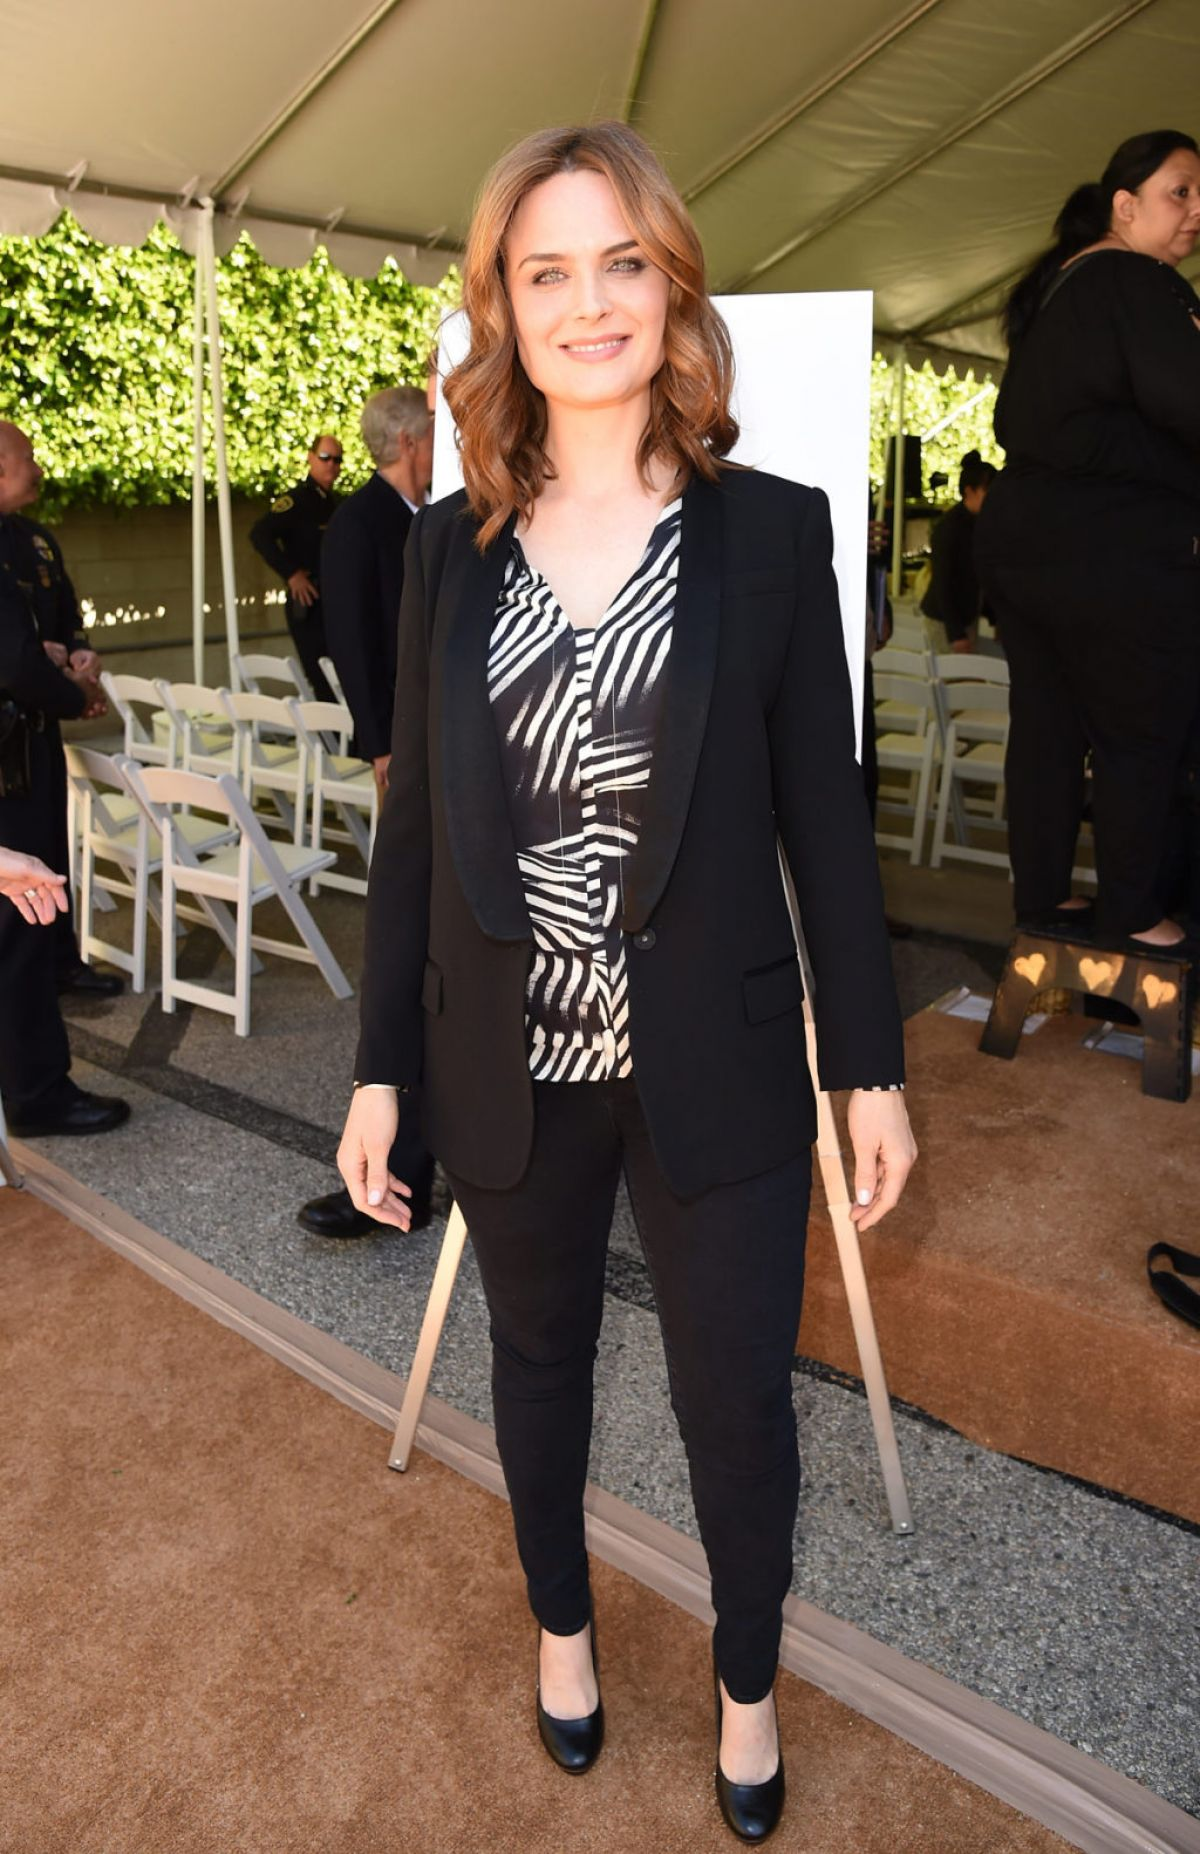 EMILY DESCHANEL at Rape Foundation Event in Santa Monica